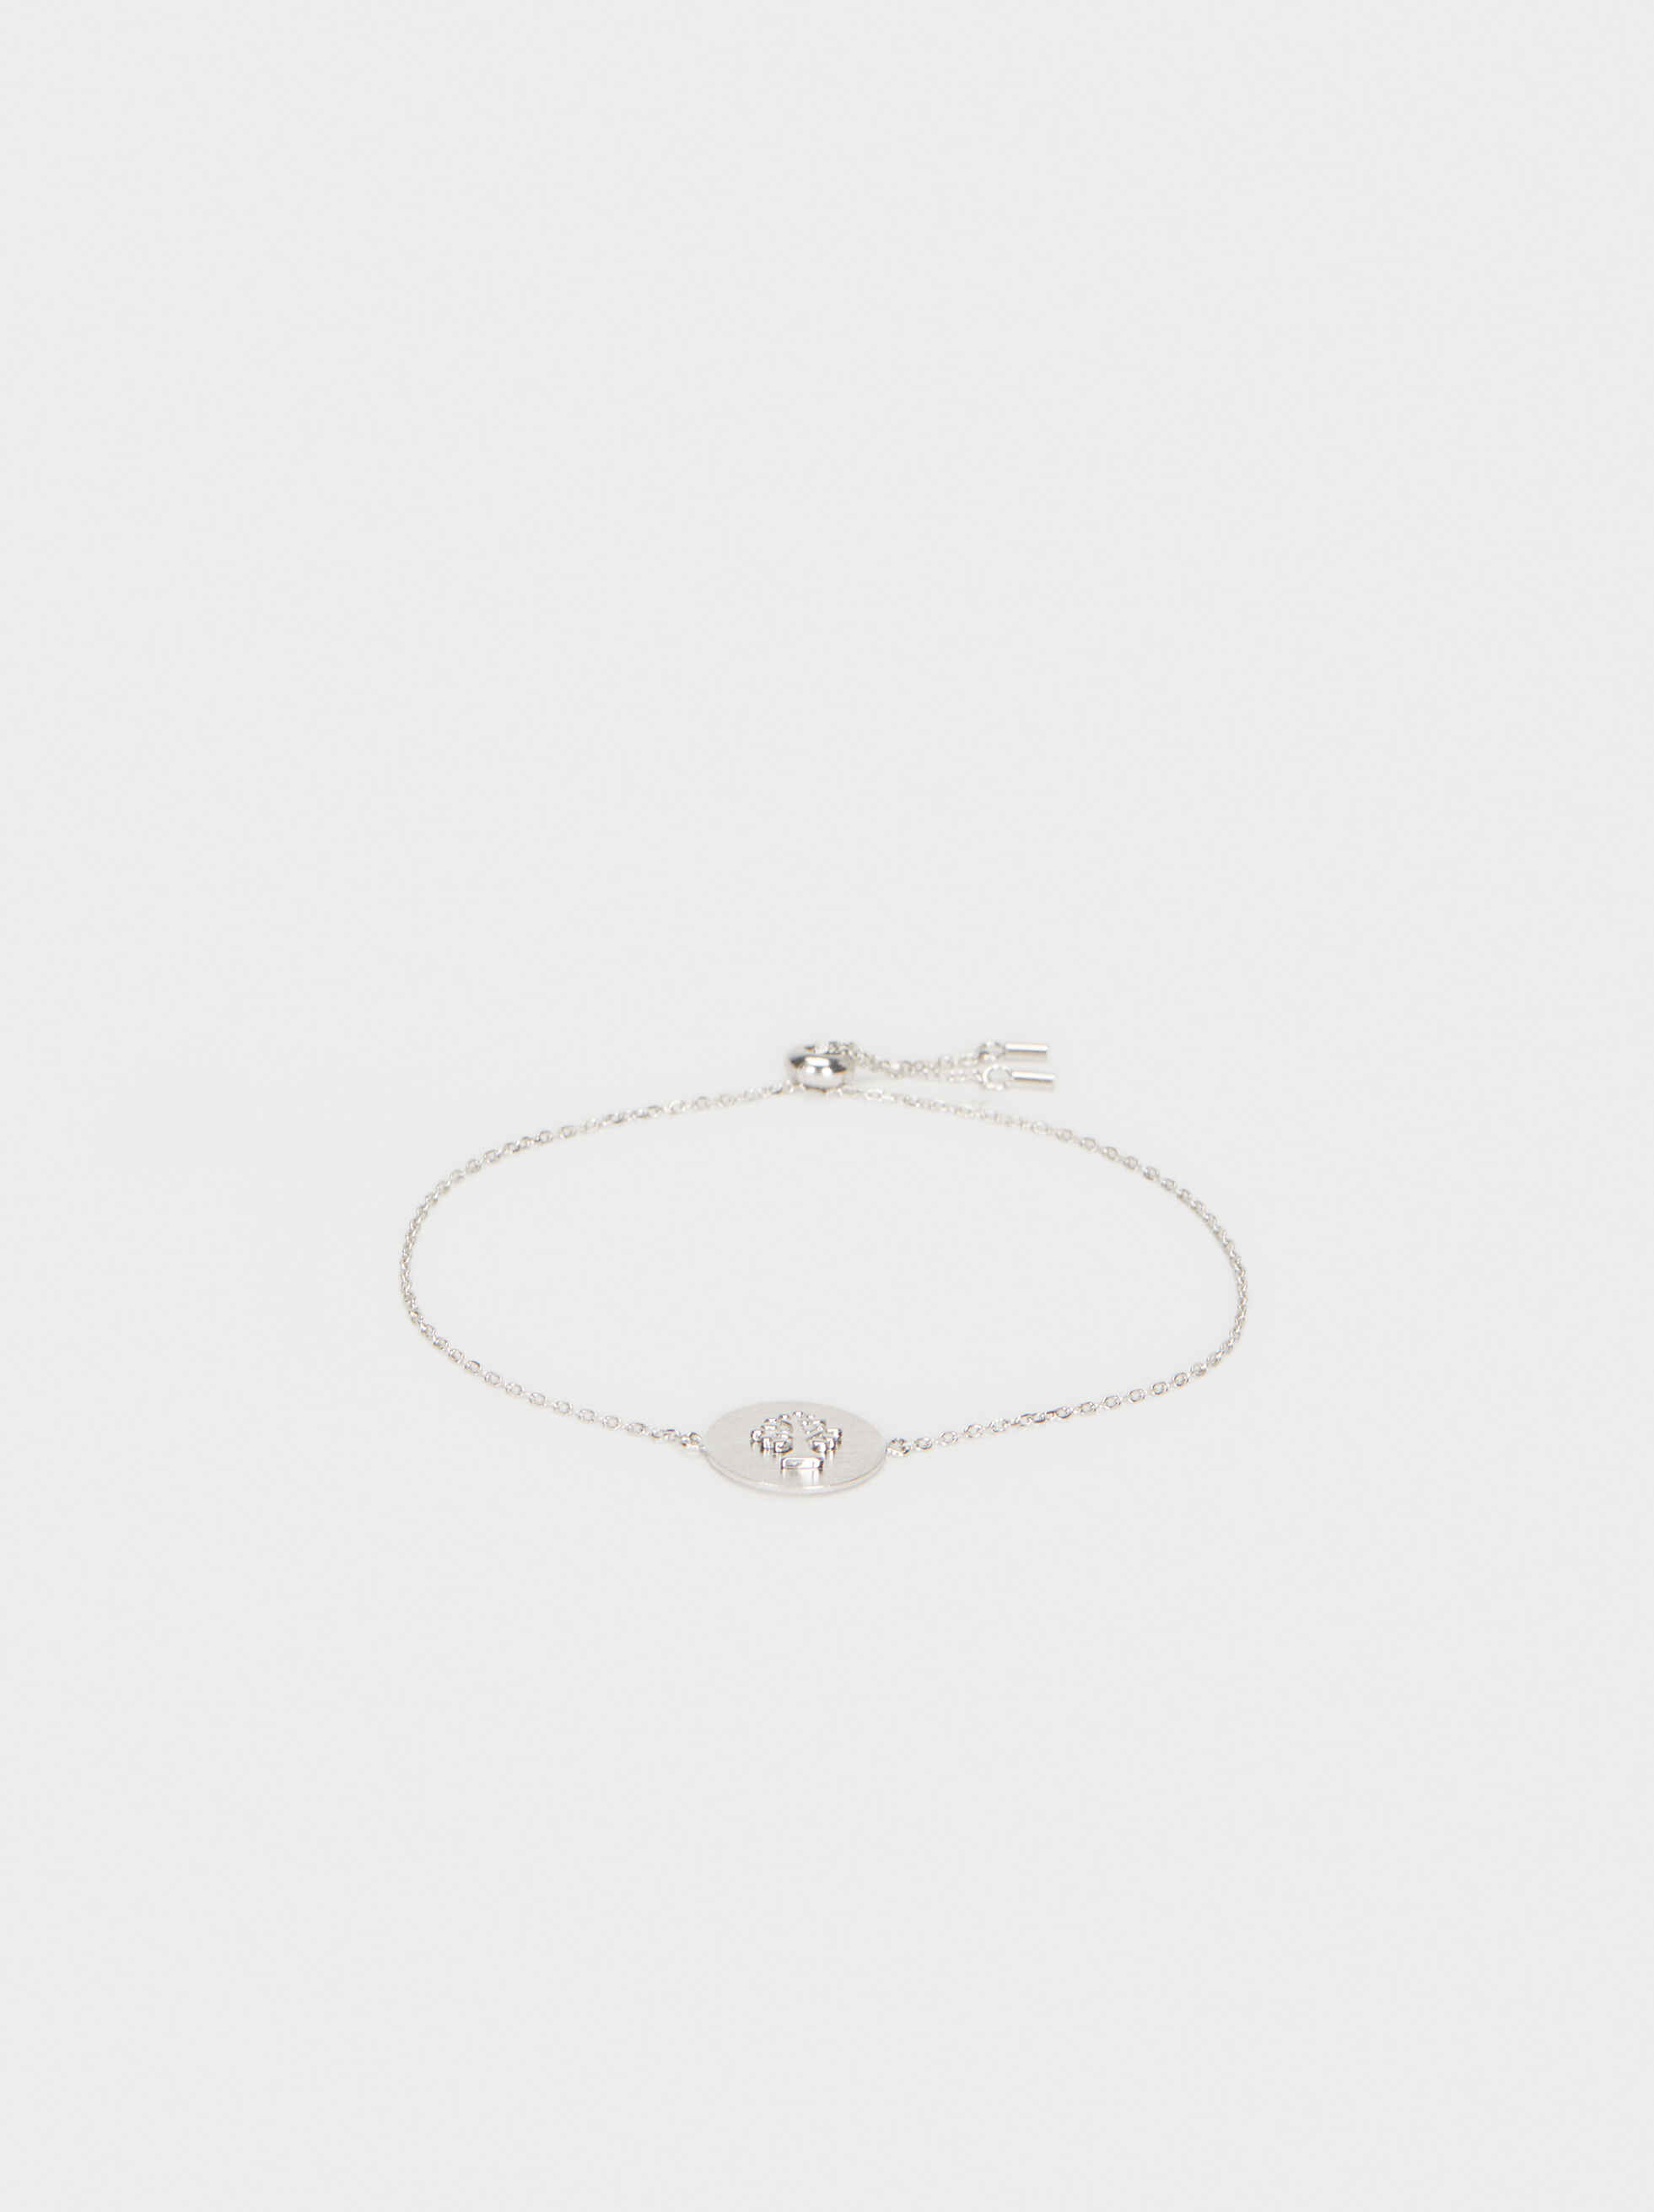 Adjustable 925 Silver Tree Bracelet, Silver, hi-res